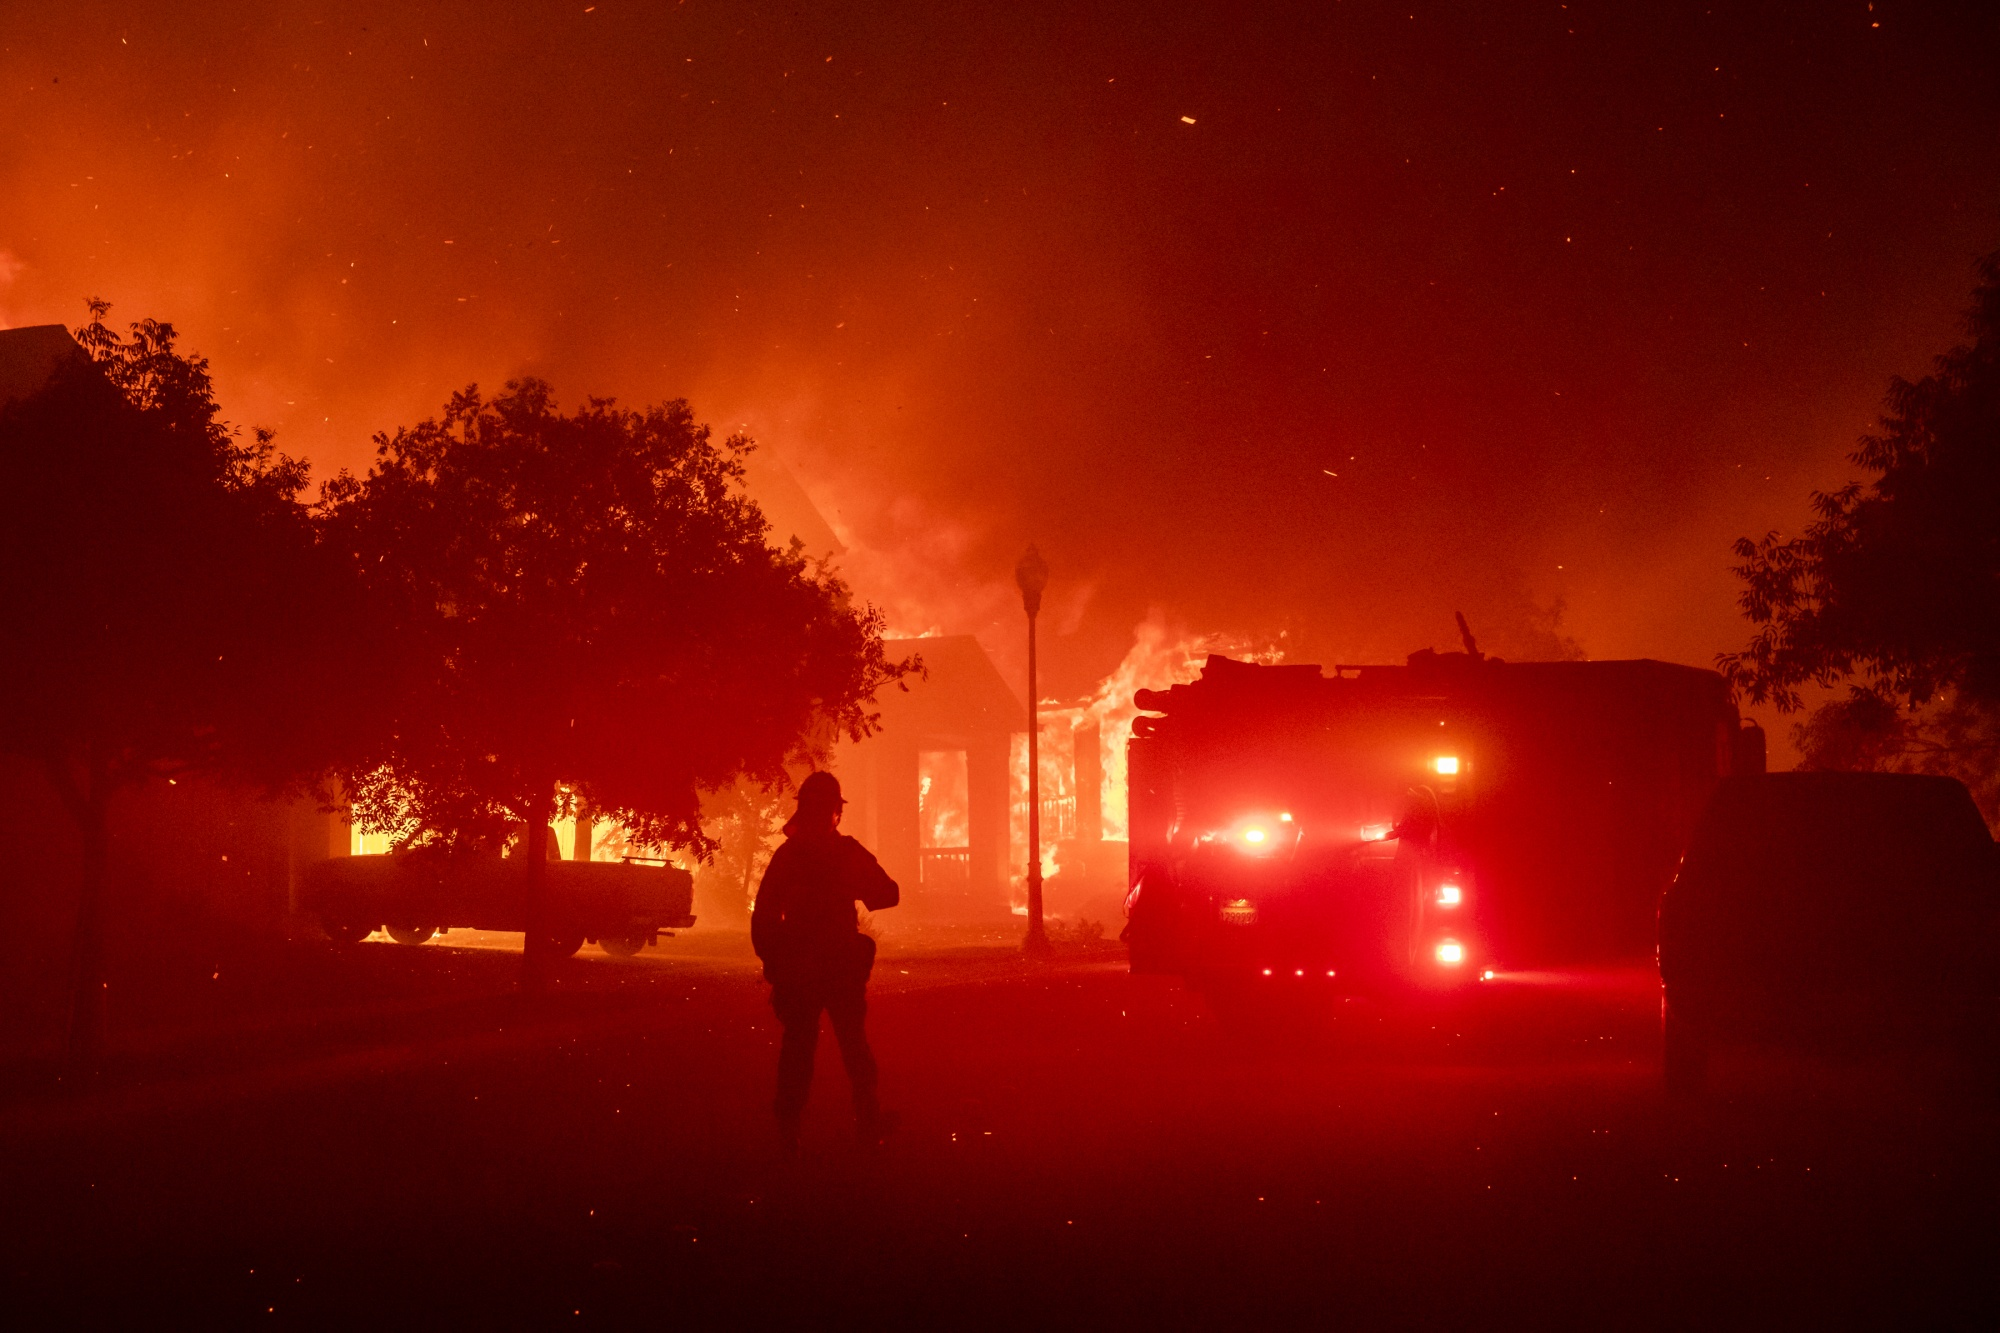 Firefighters Battle The Shady Fire In Sonoma County